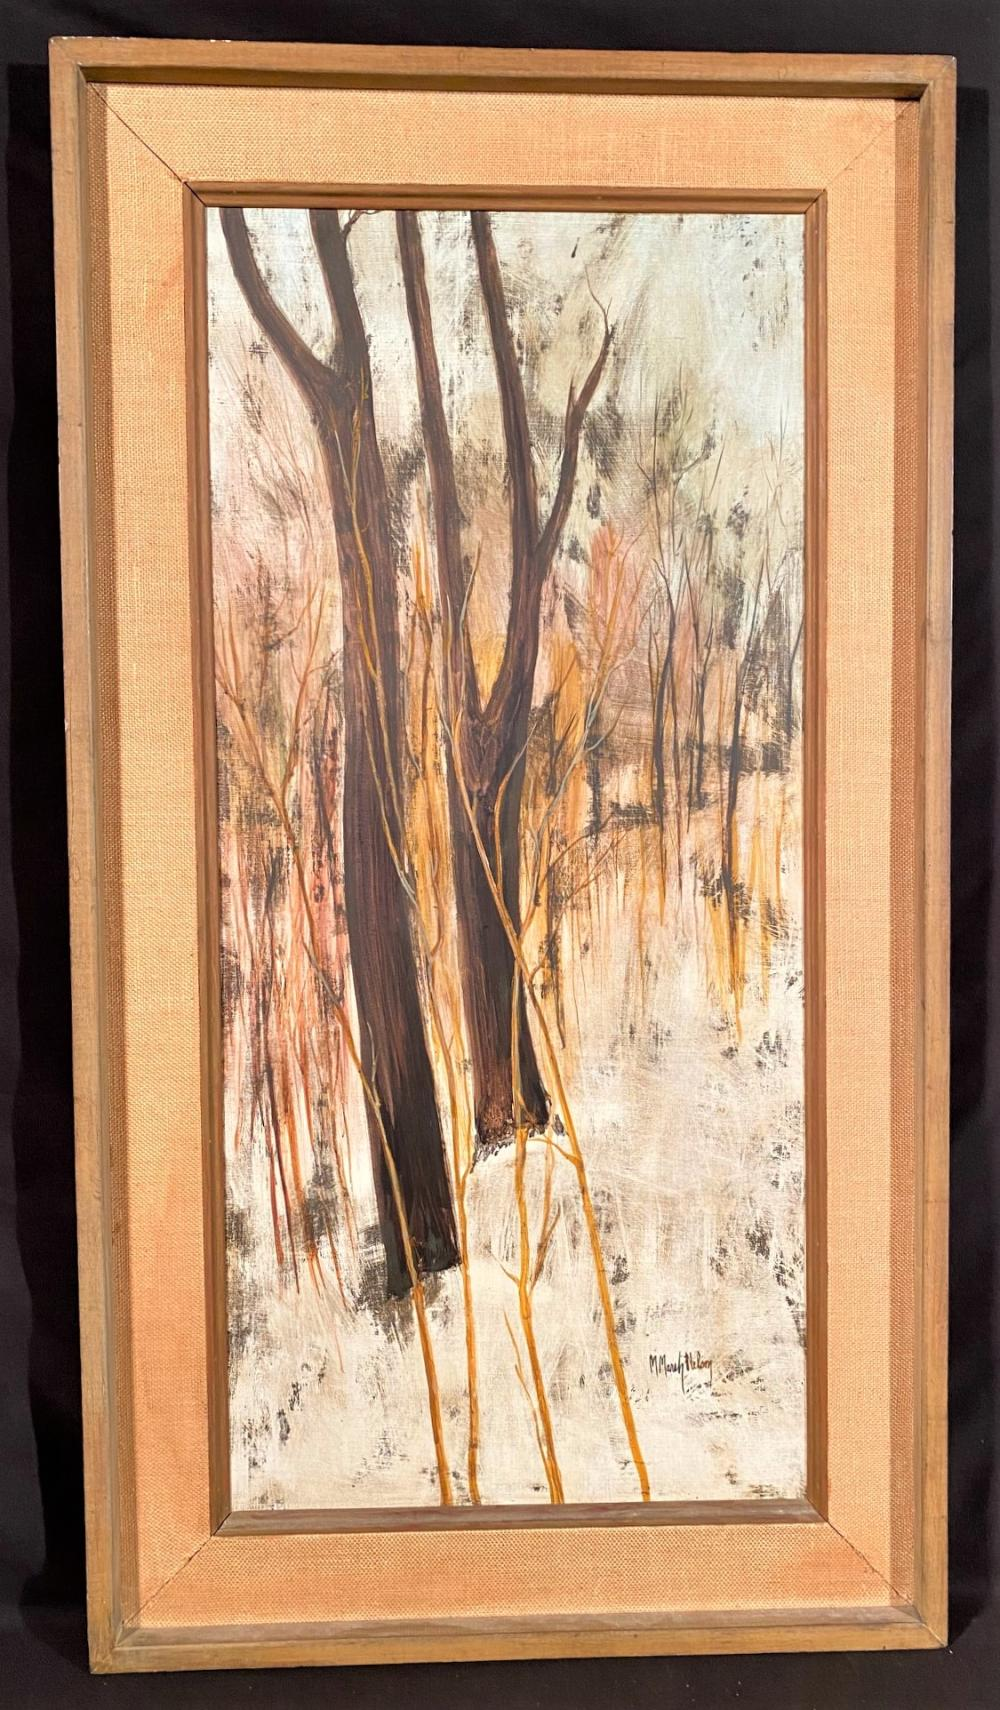 M. MARSH NELSON (20th CENTURY) ORIGINAL OIL ON CANVAS LANDSCAPE PAINTING TITLED WINTER DEEP - 23 IN x 42 IN